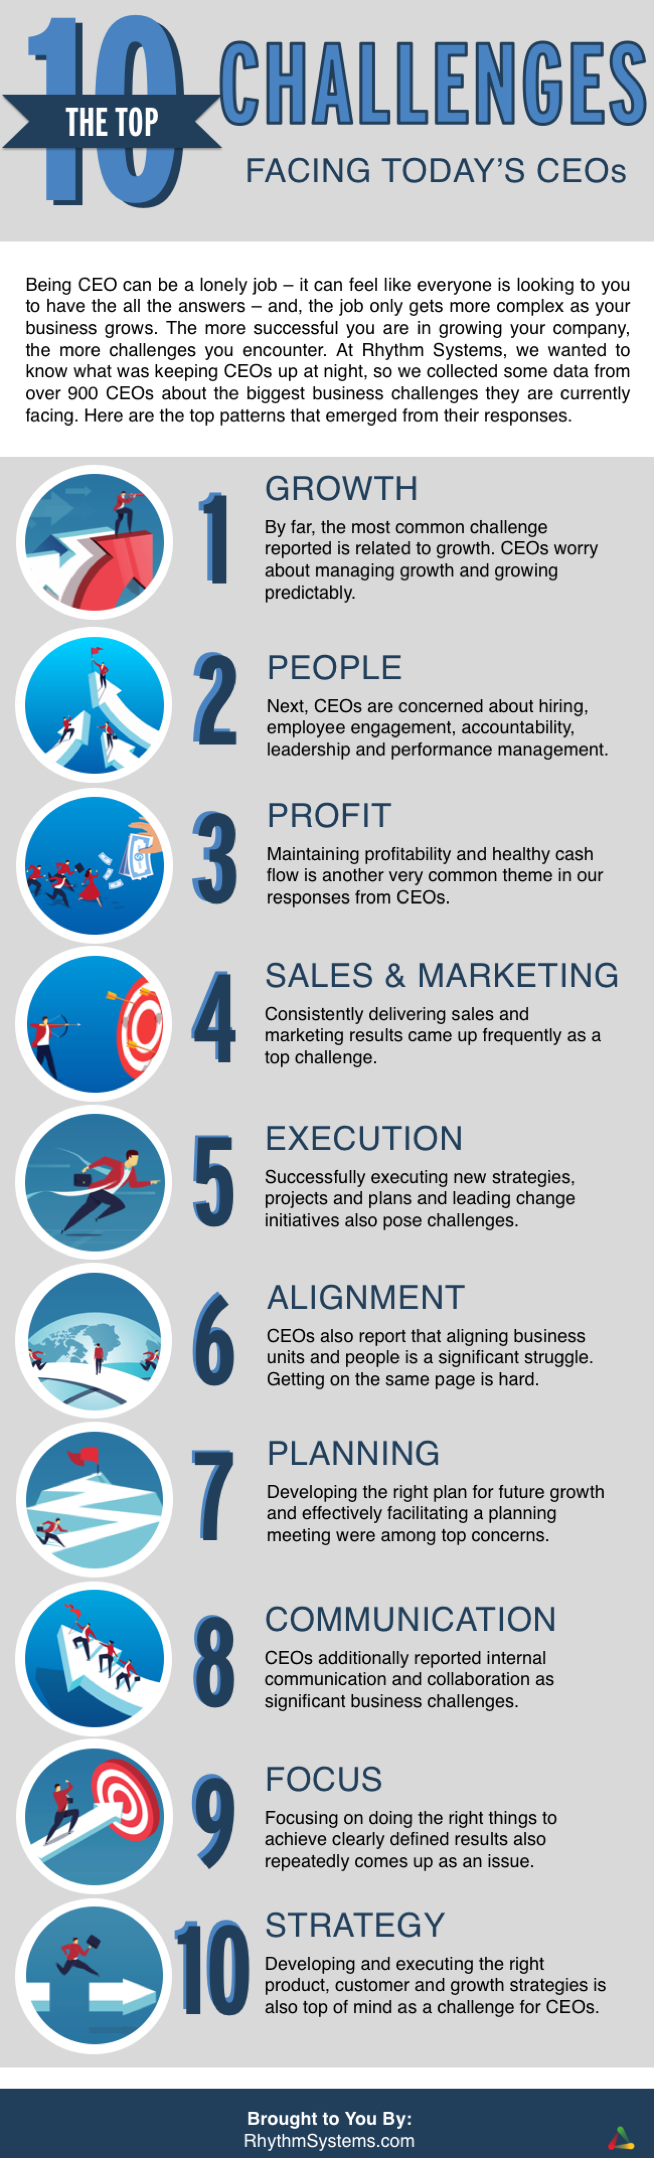 The Top 10 Challenges Of Special >> Top 10 Business Challenges Facing Today S Ceos Infographic